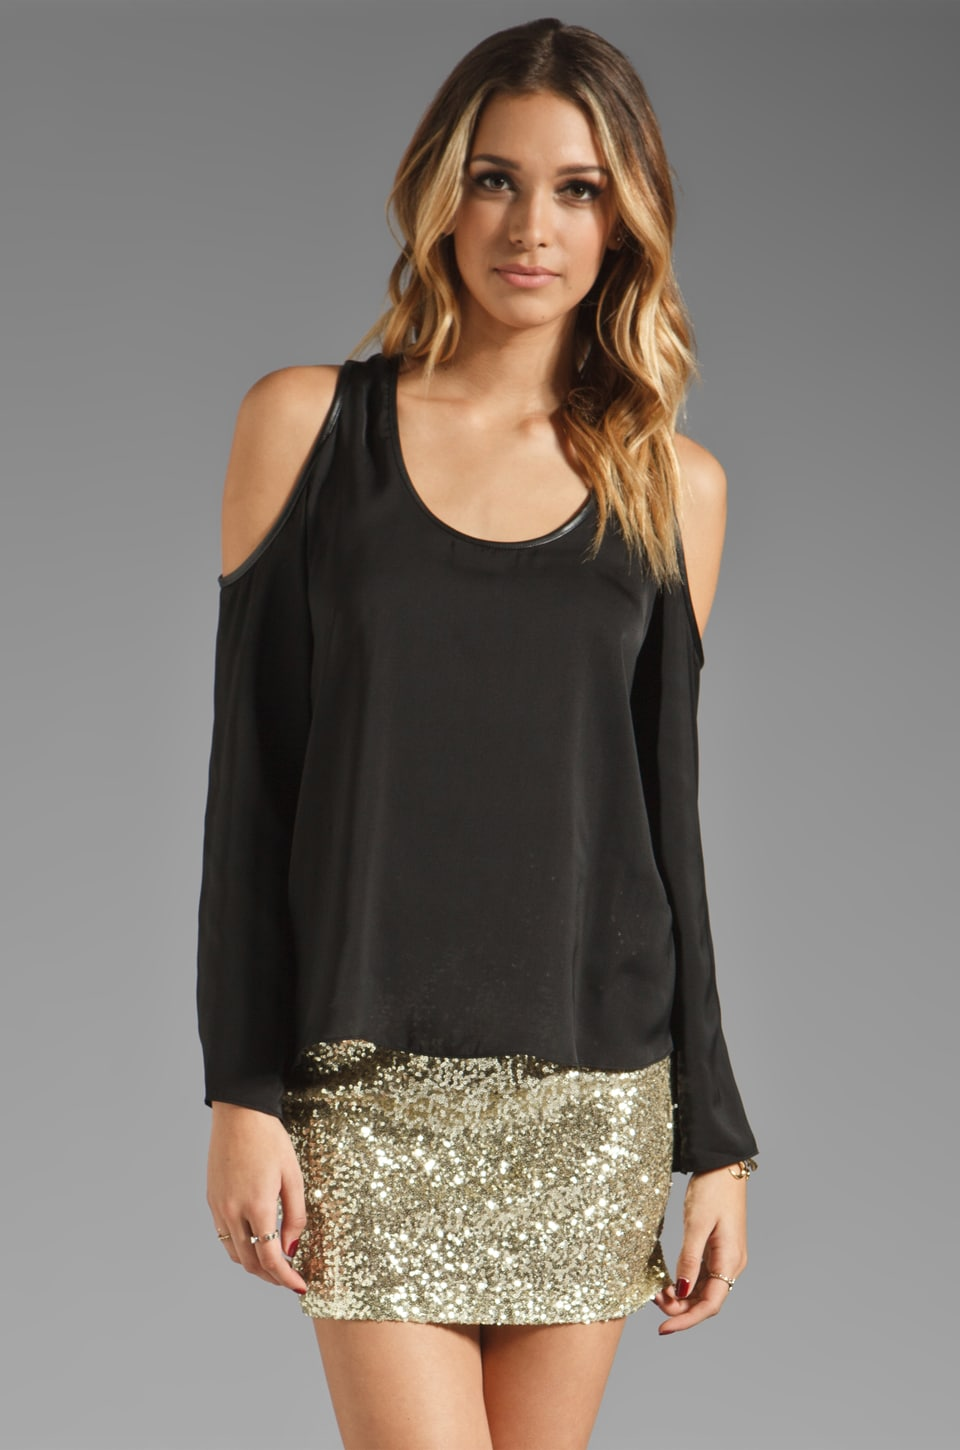 Lovers + Friends Stay Longer Blouse in Black